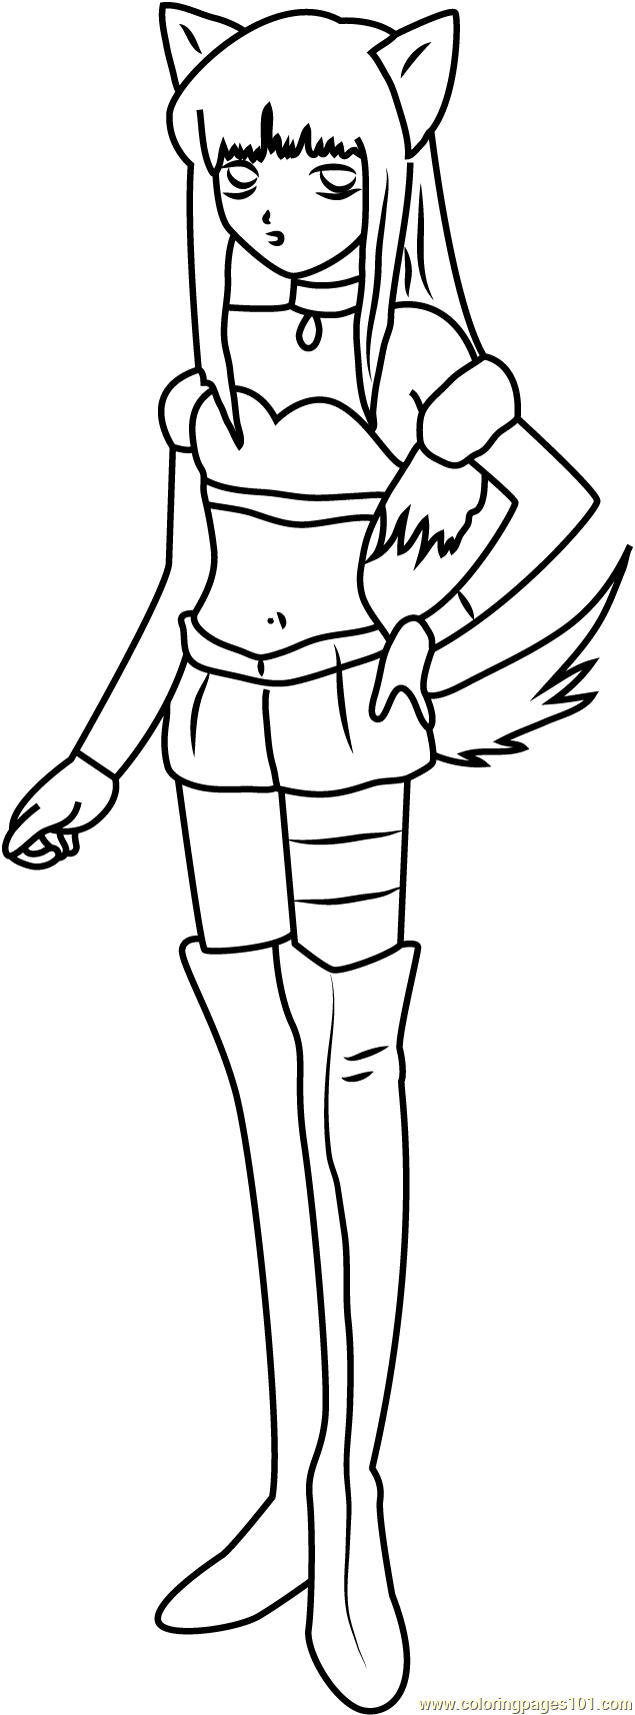 Mew Mew Coloring Page Free Tokyo Mew Mew Coloring Pages